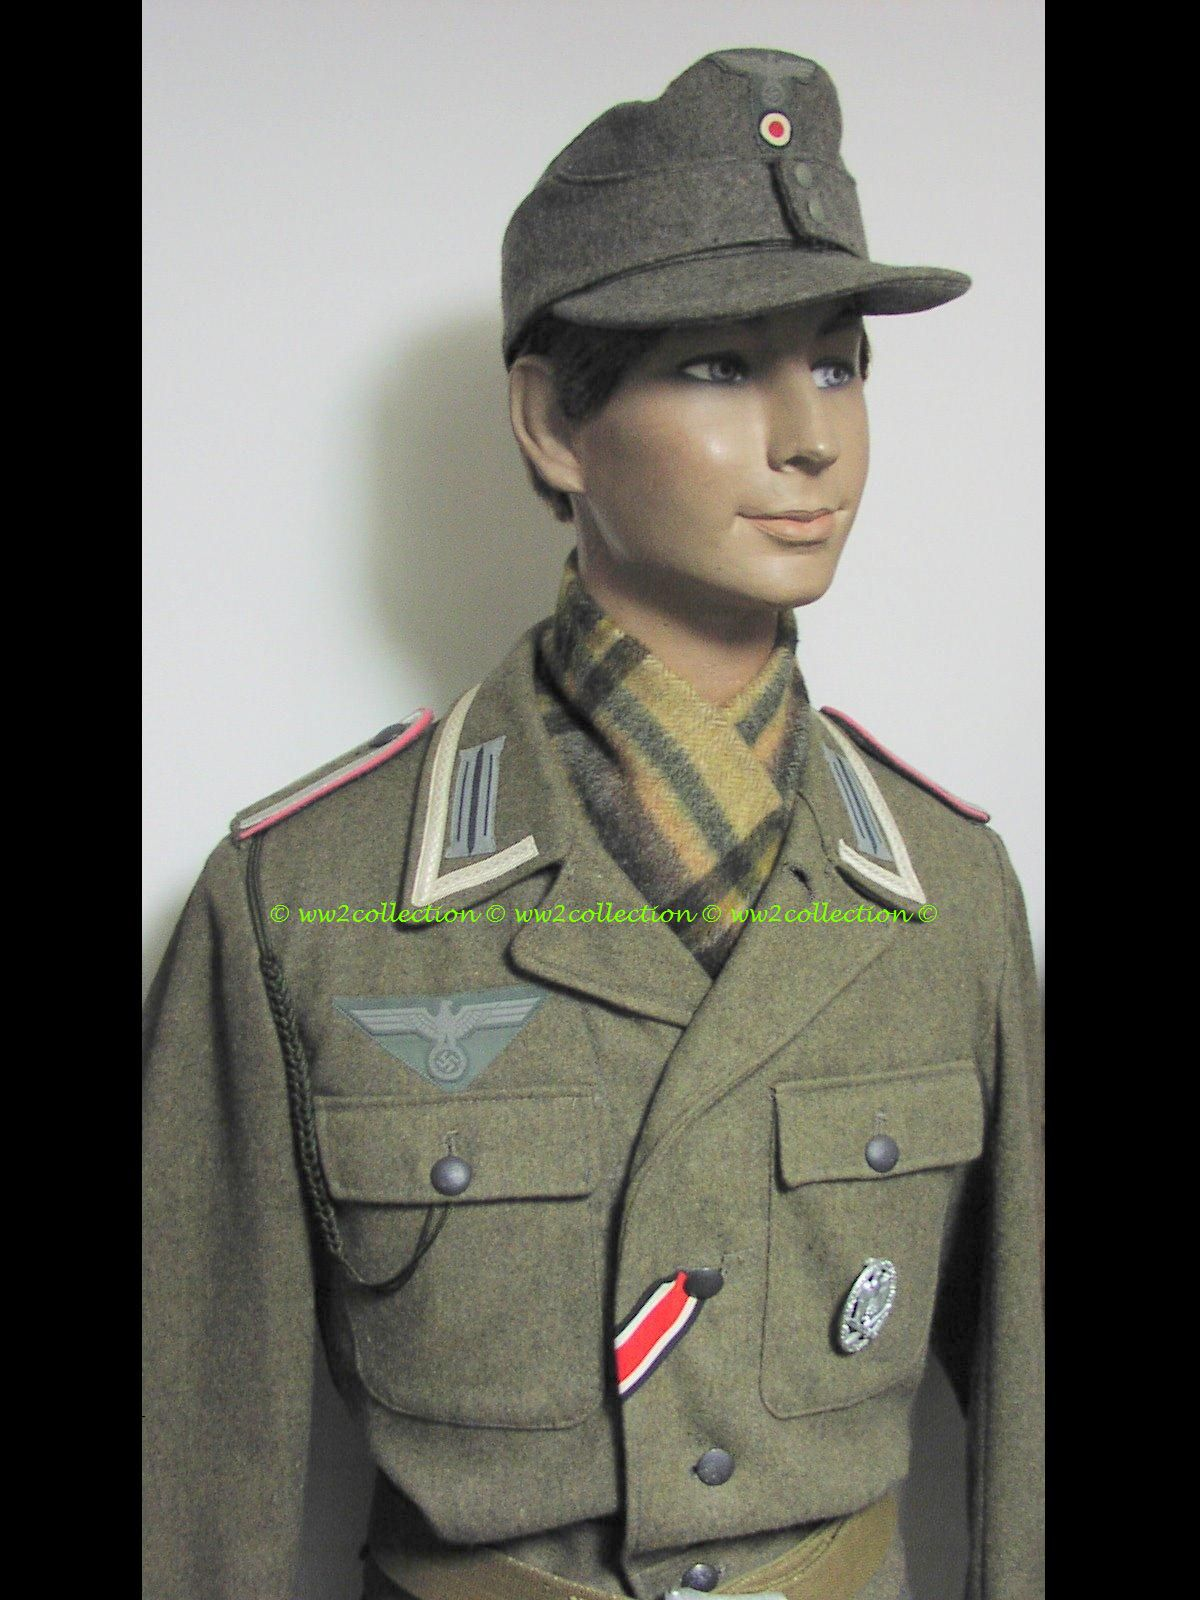 WW2 German Soldier, Uniform 1944